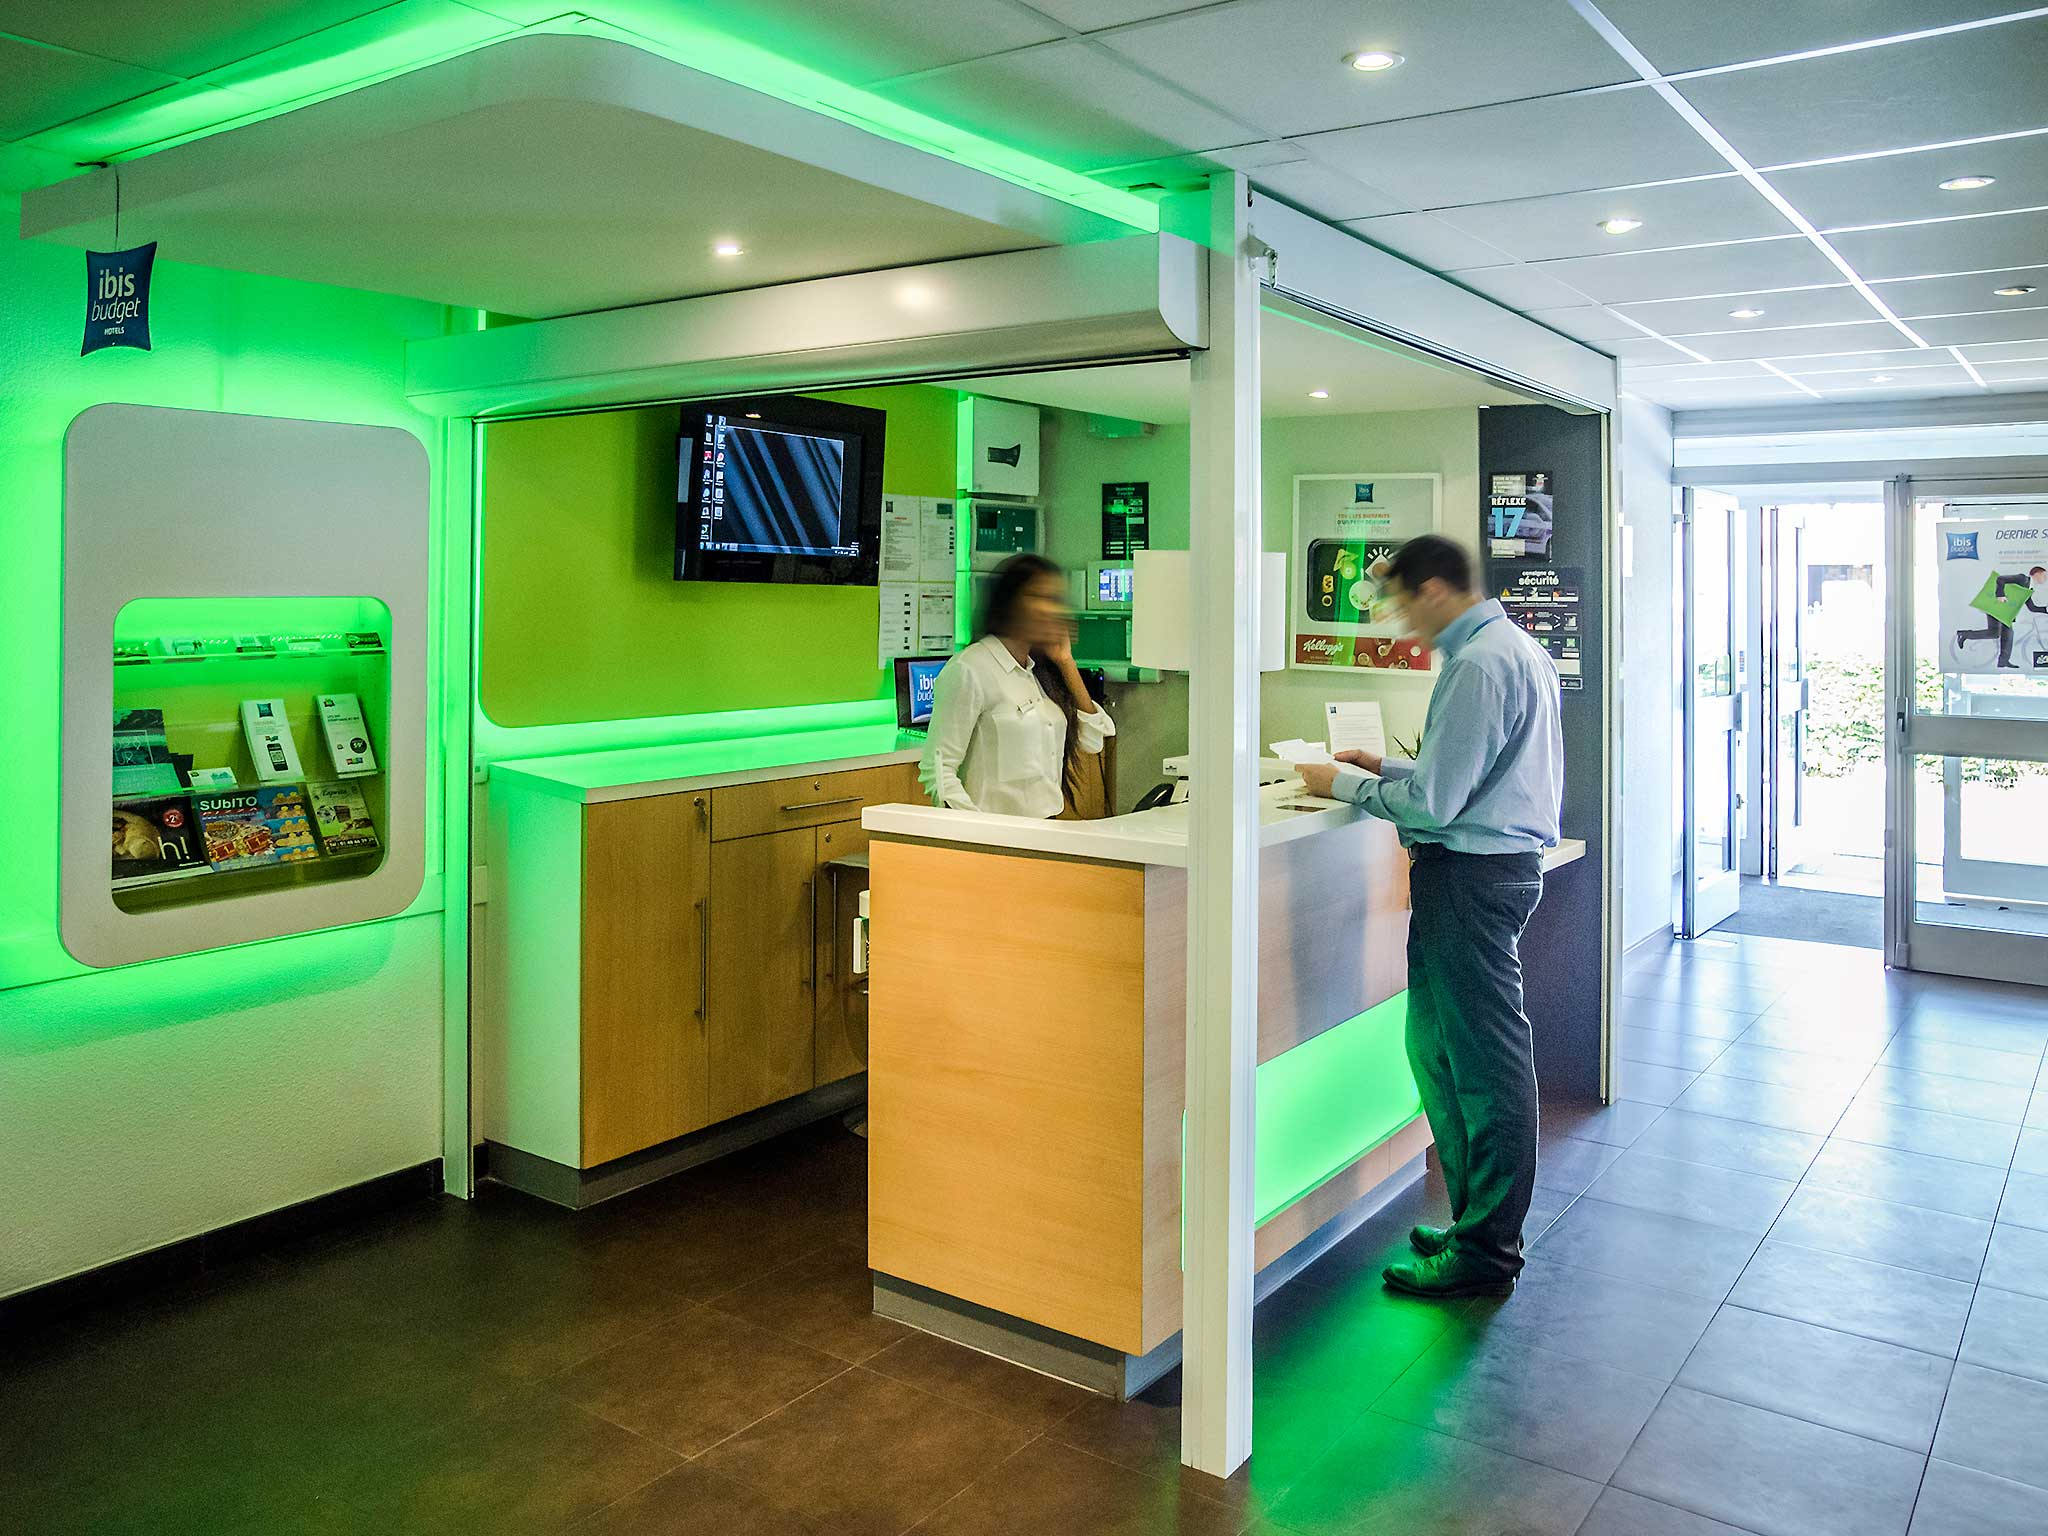 Hotell – ibis budget Aéroport Le Bourget Garonor